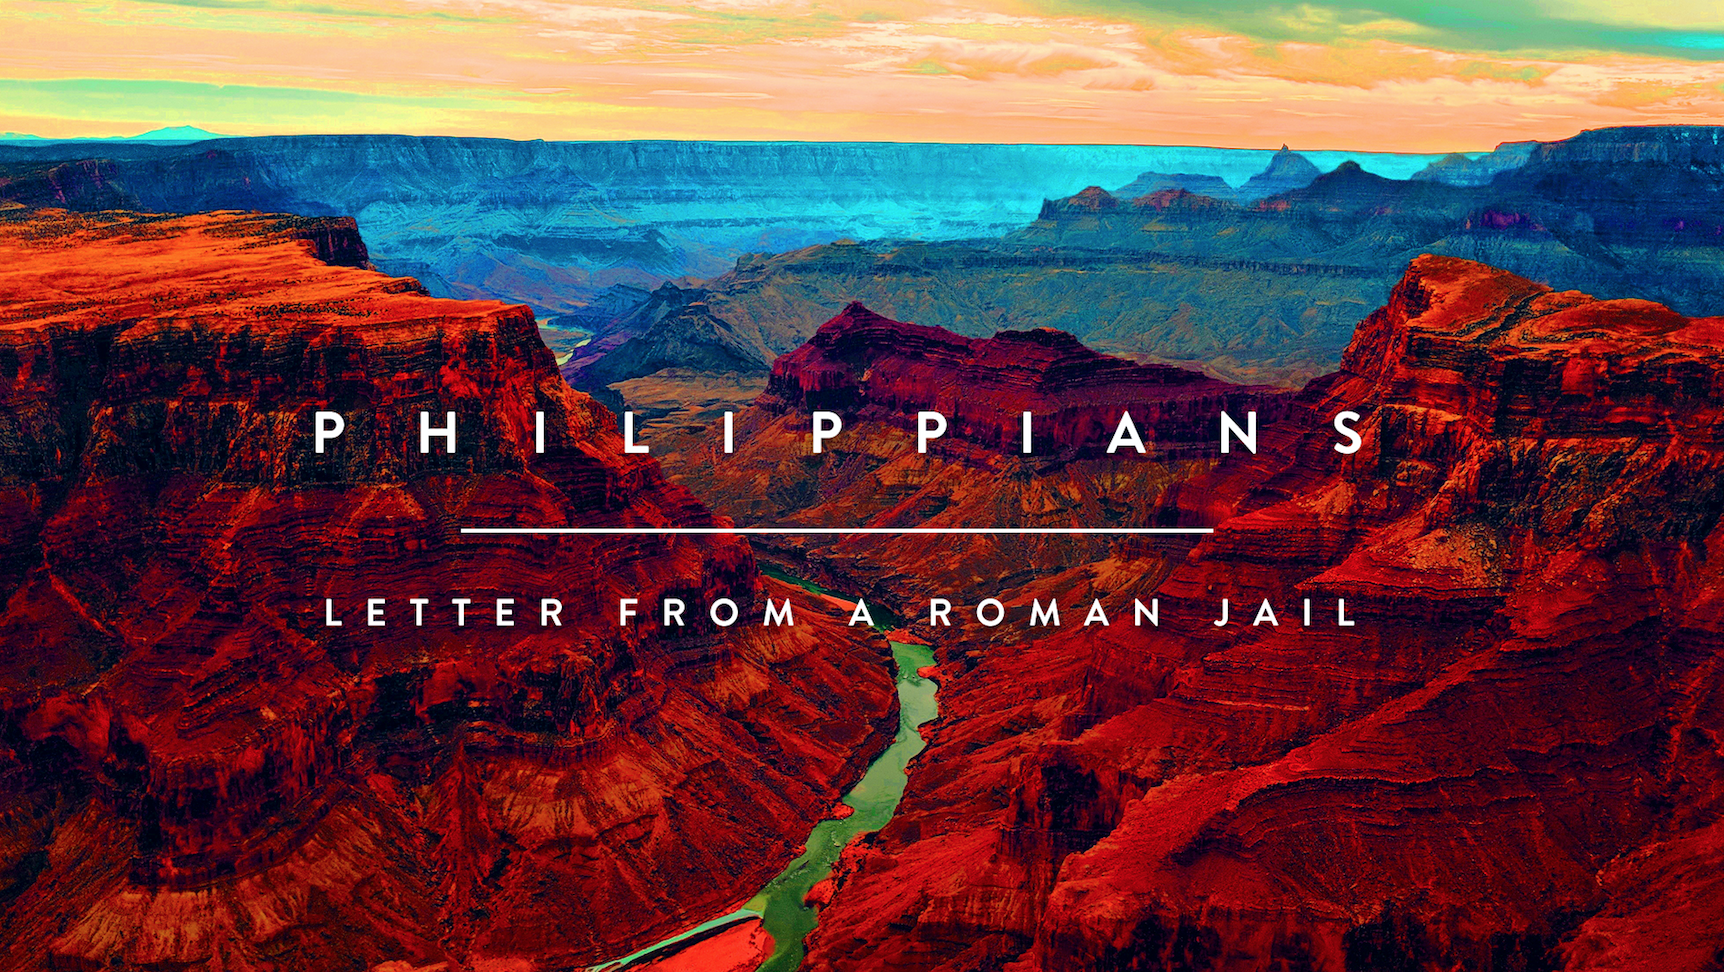 Join us as we go chapter by chapter, verse by verse into the book of Philippians and discover what it meant to the church of Philippi and what it means for us today!